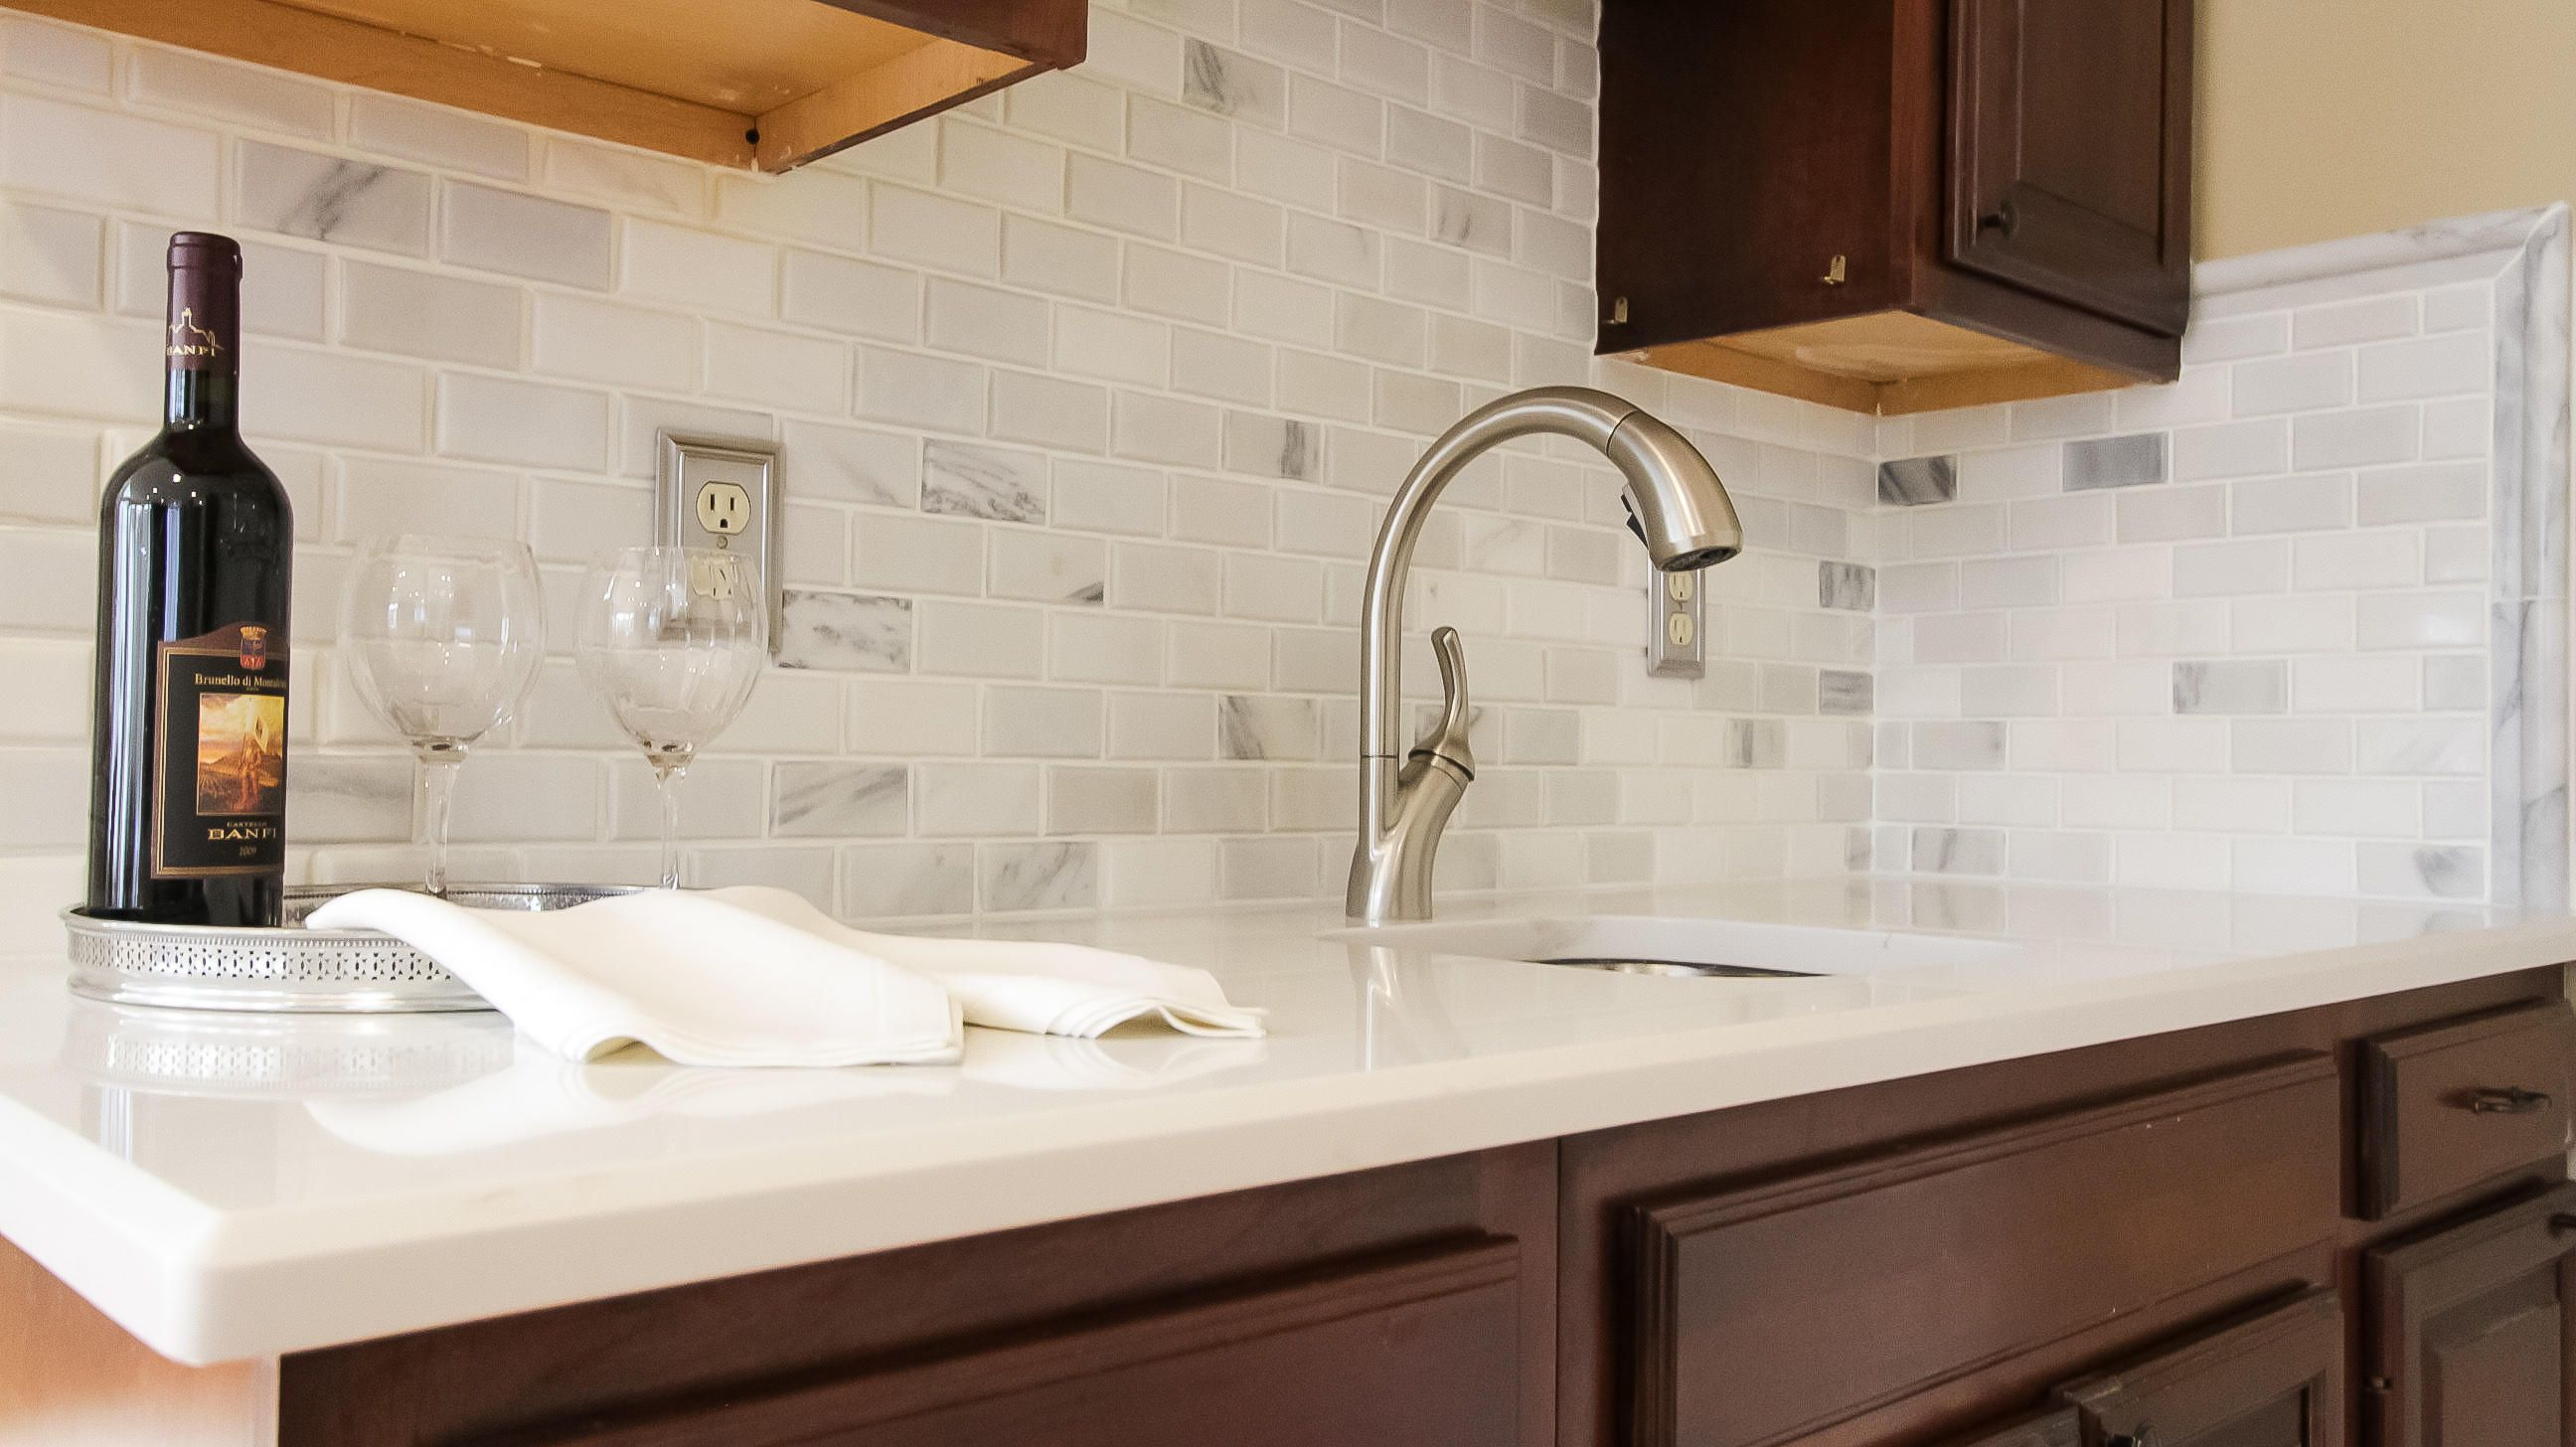 Separate wet bar, new sink and faucet.